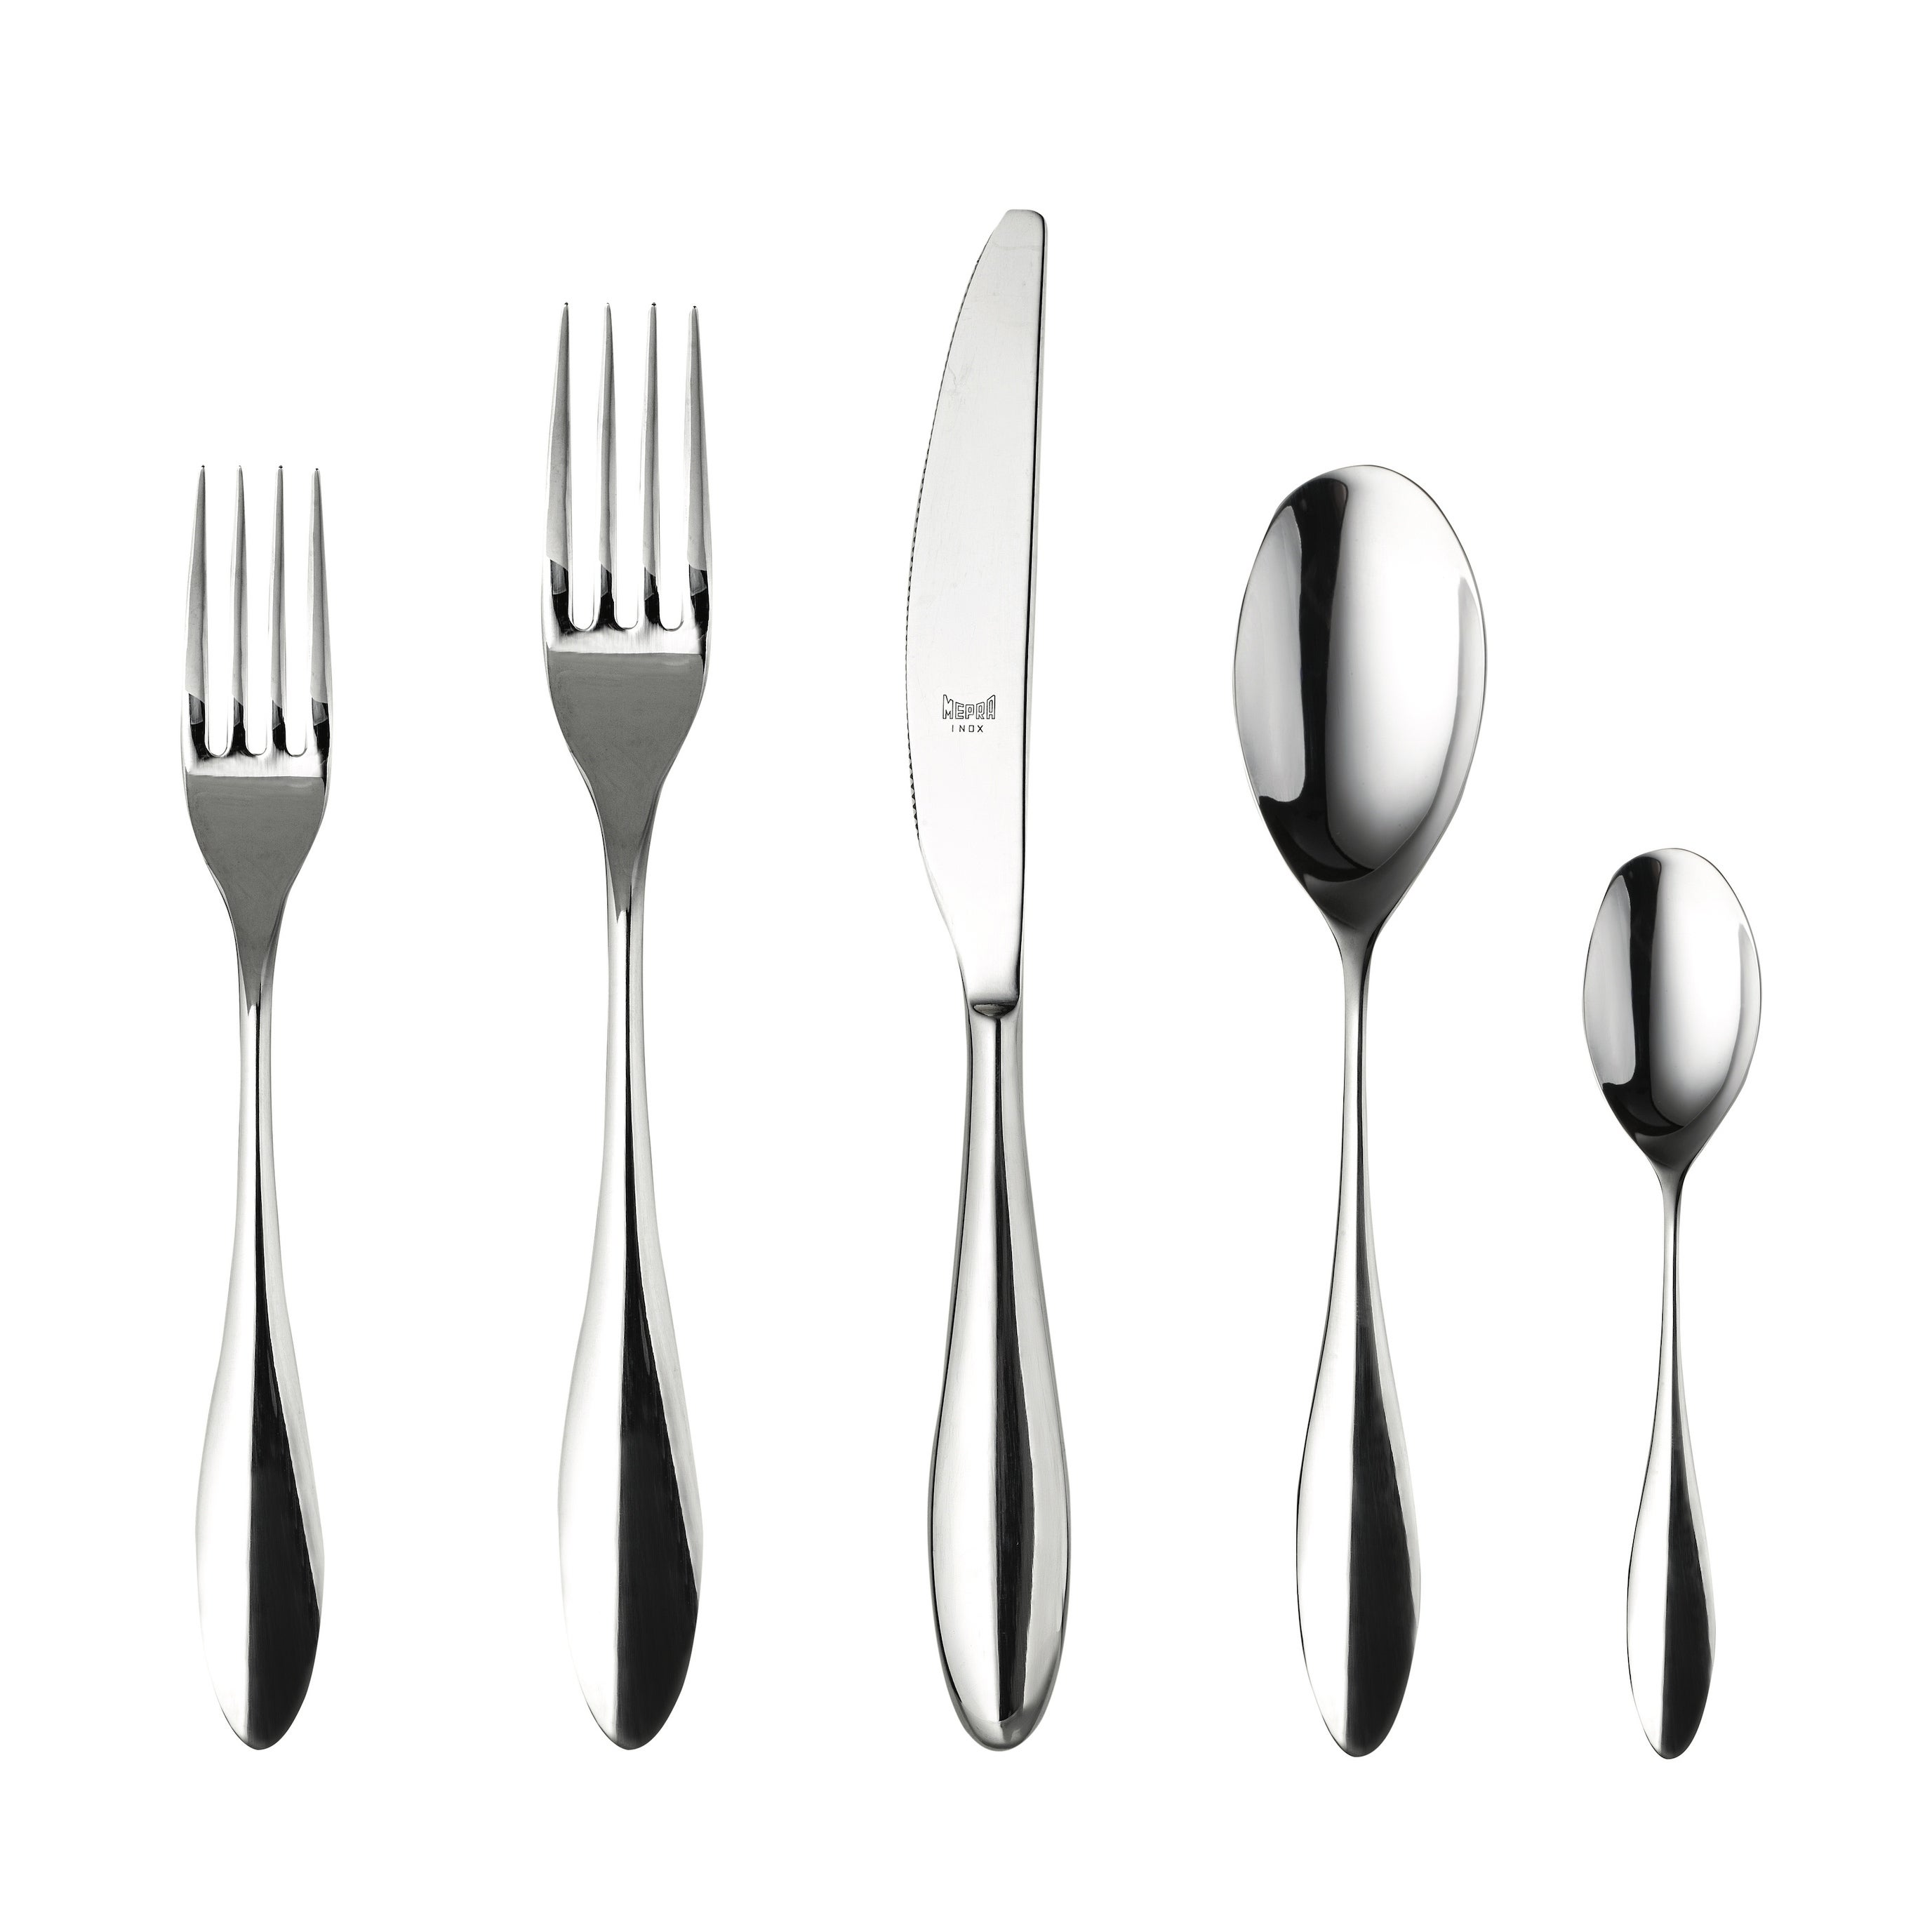 20 Piece Stainless Steel Carinzia Flatware Set Service For 4 Overstock 22963916